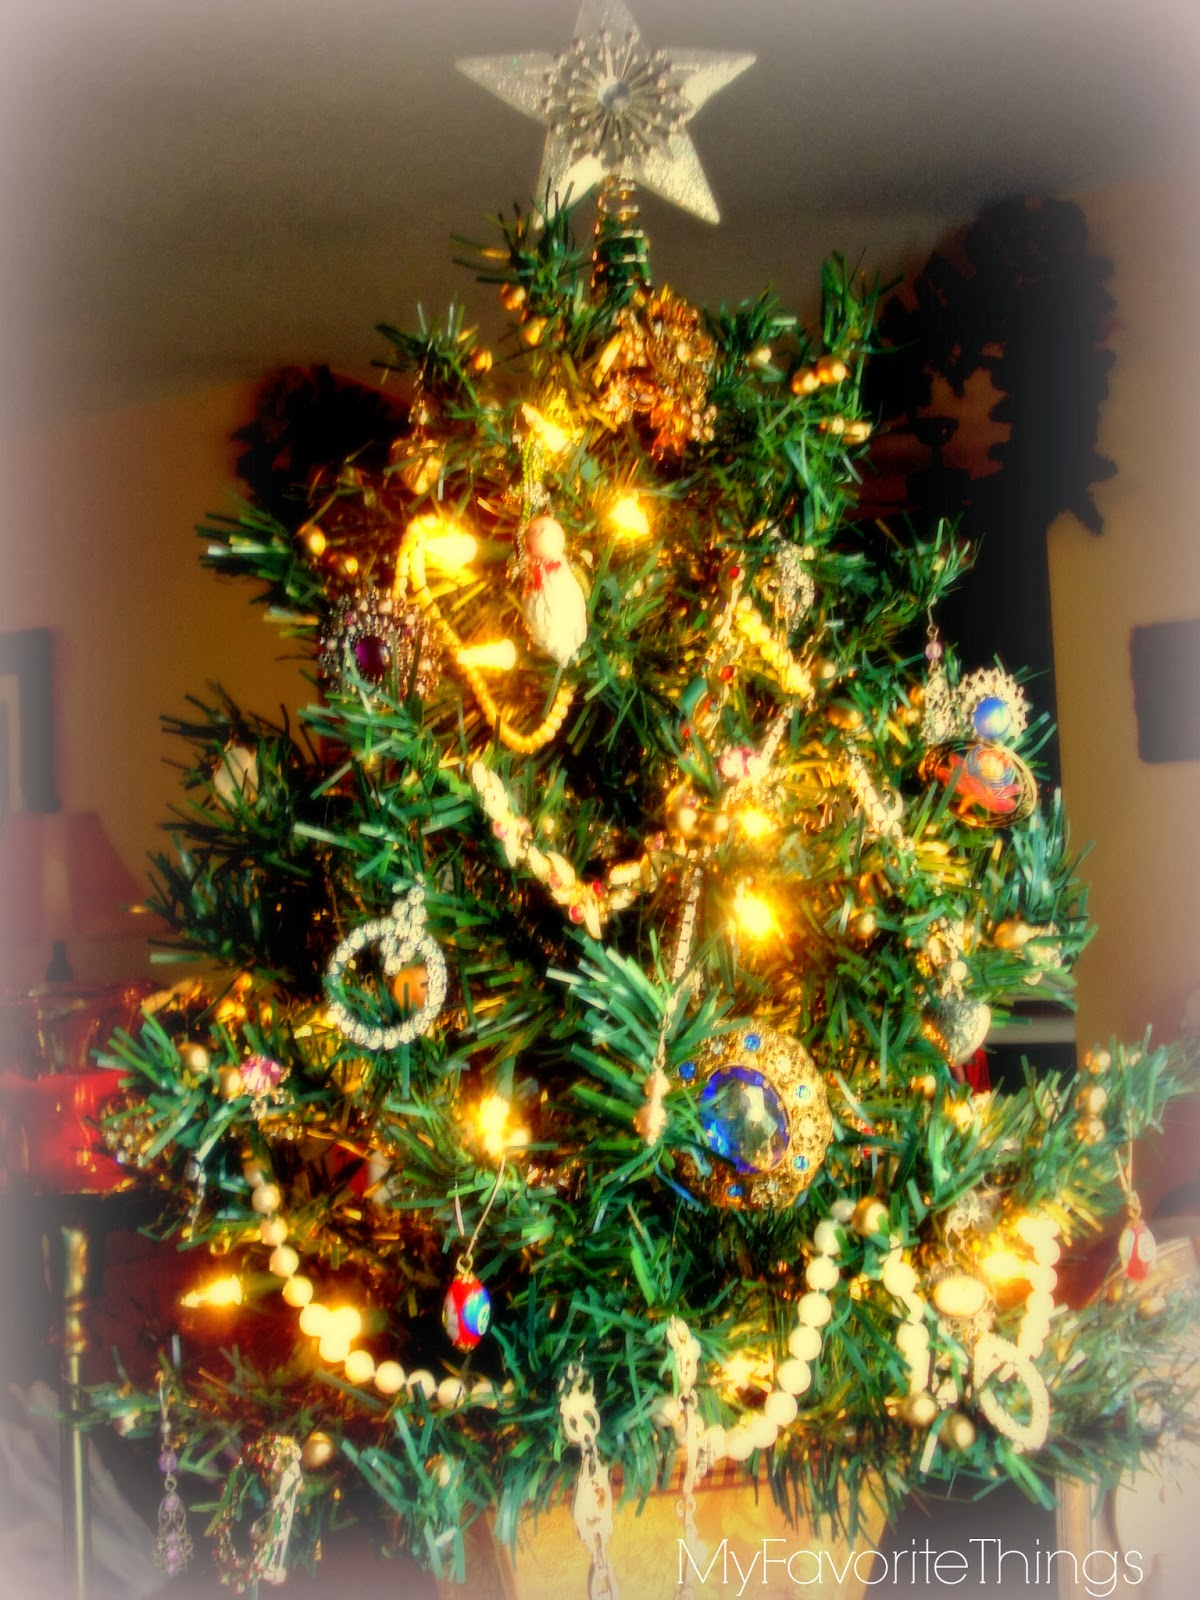 My Favorite Things: Vintage Jewelry Christmas Tree